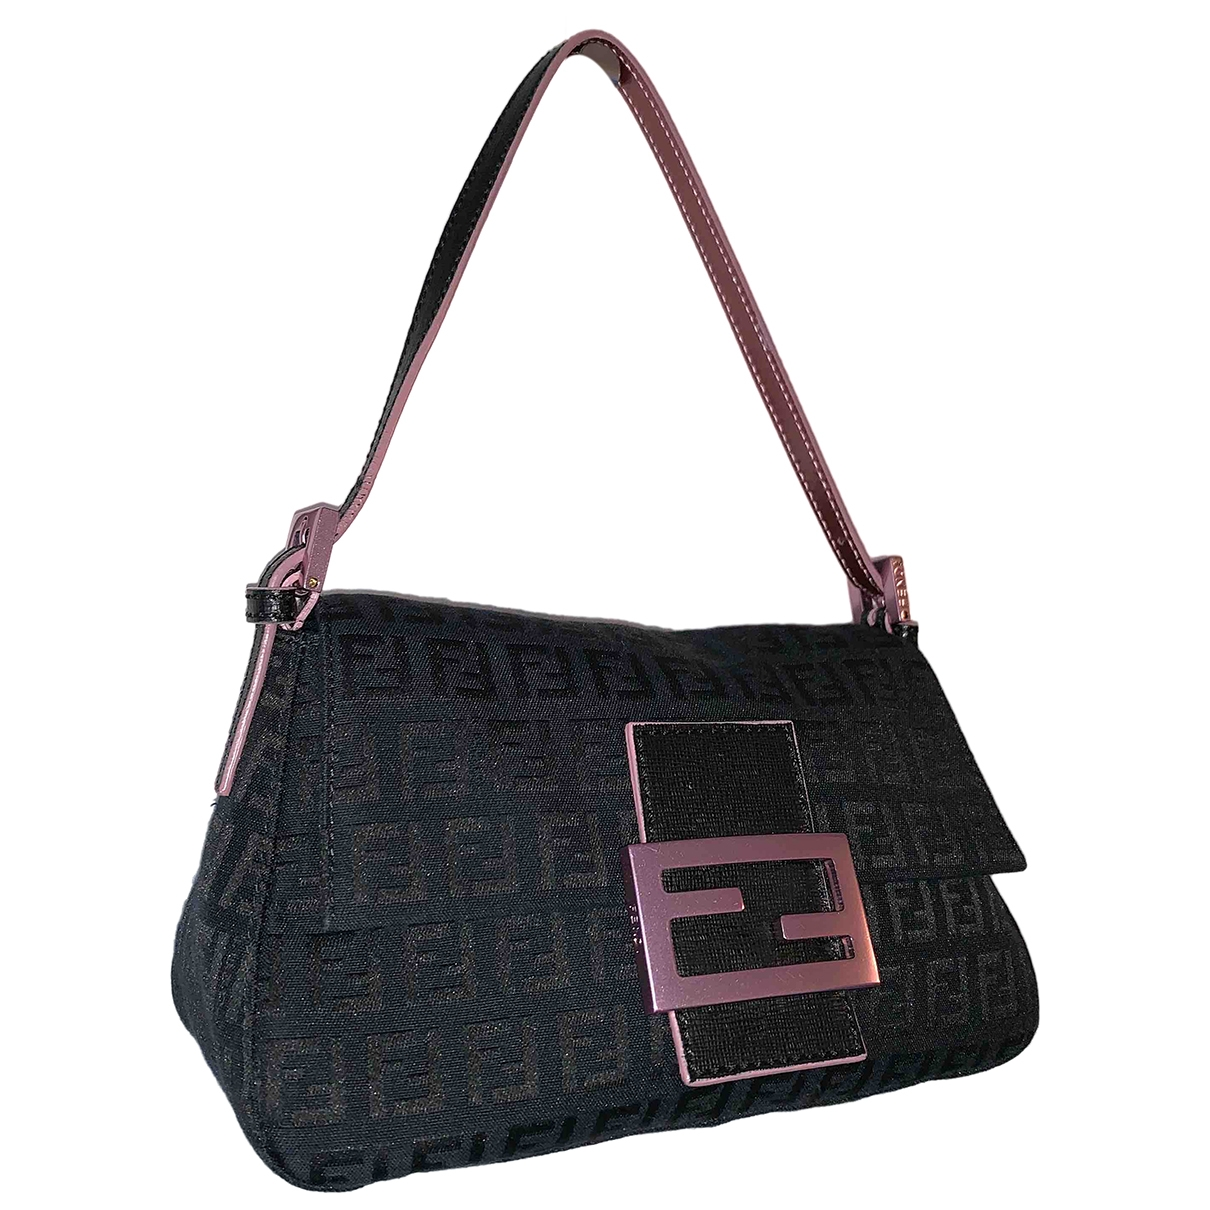 Fendi Baguette Black Cloth handbag for Women \N